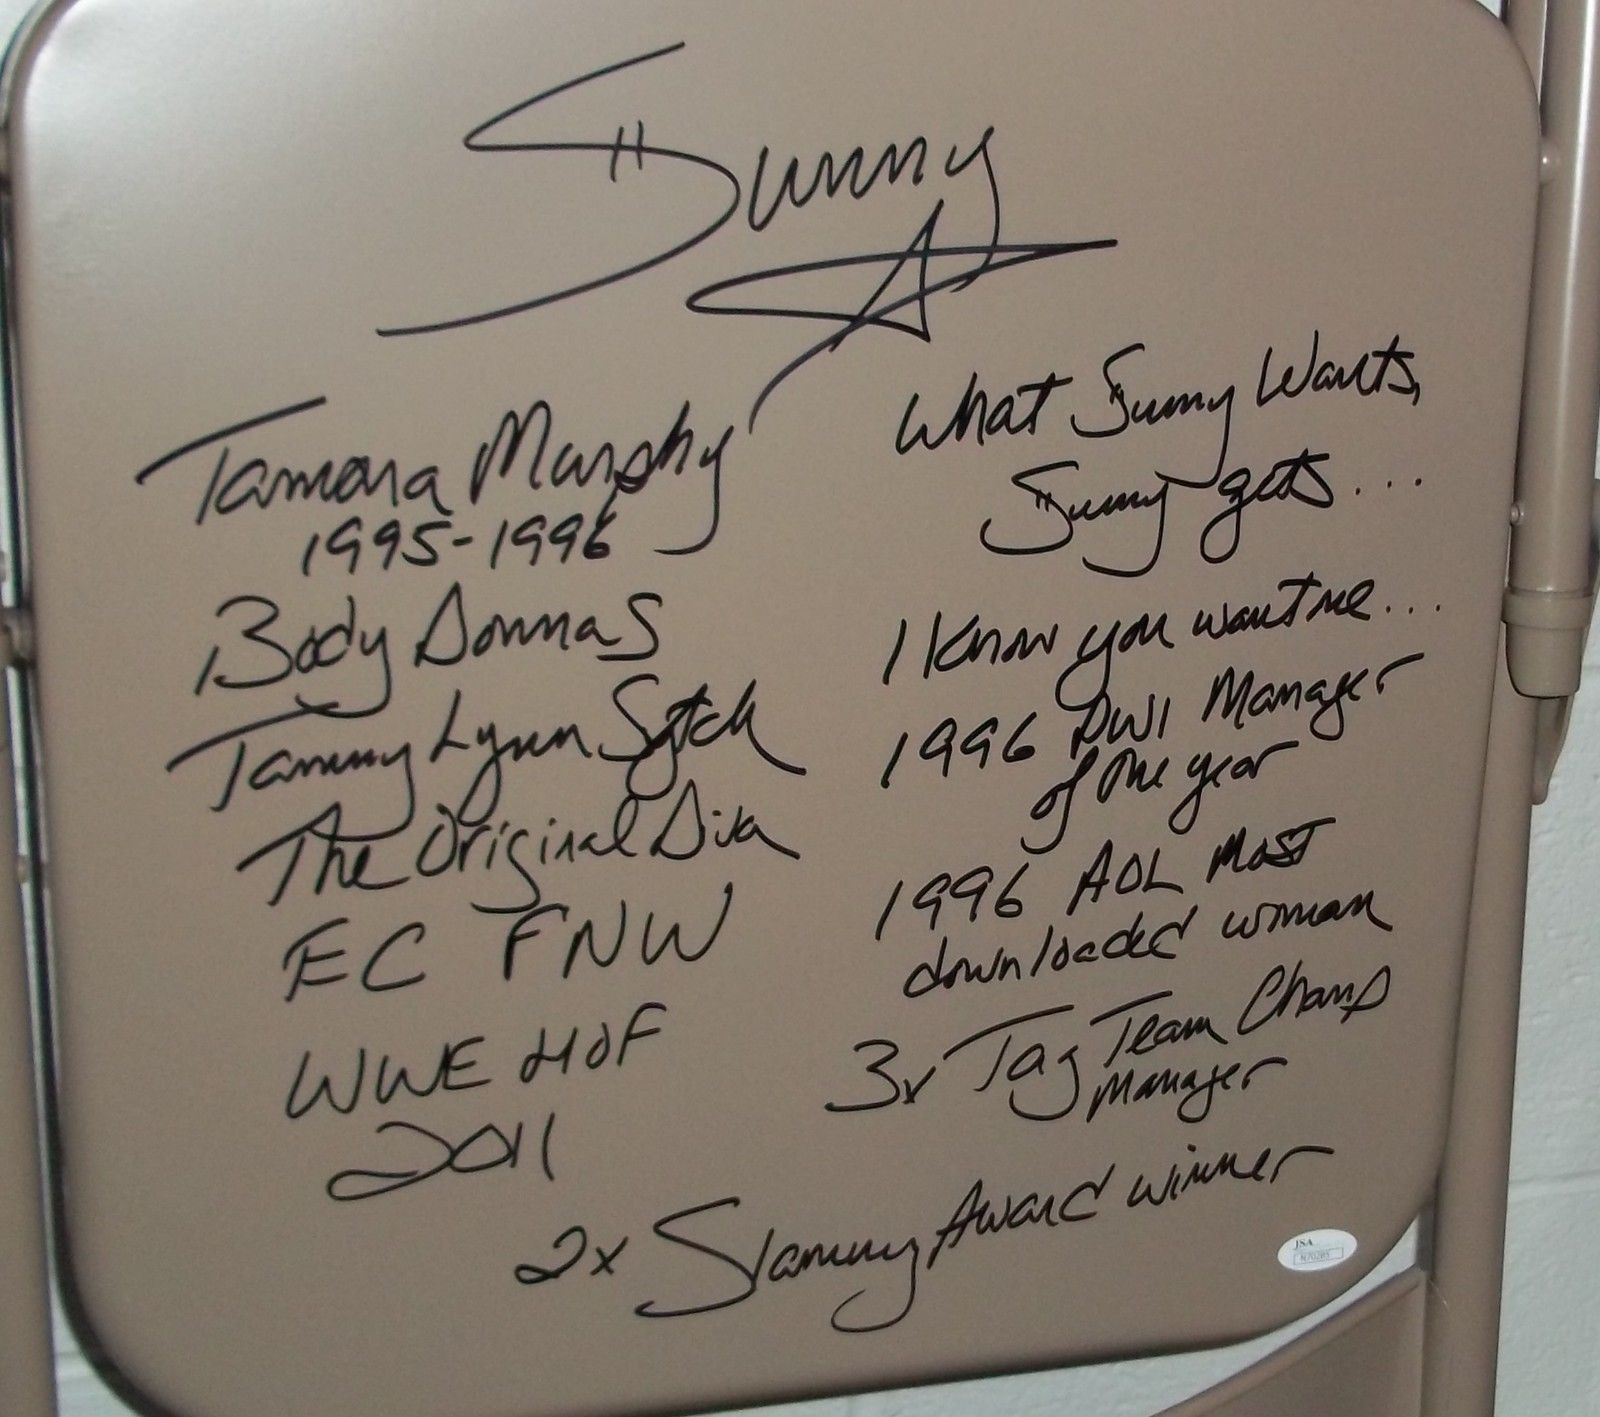 Sunny Tammy Sytch autographed chair 2